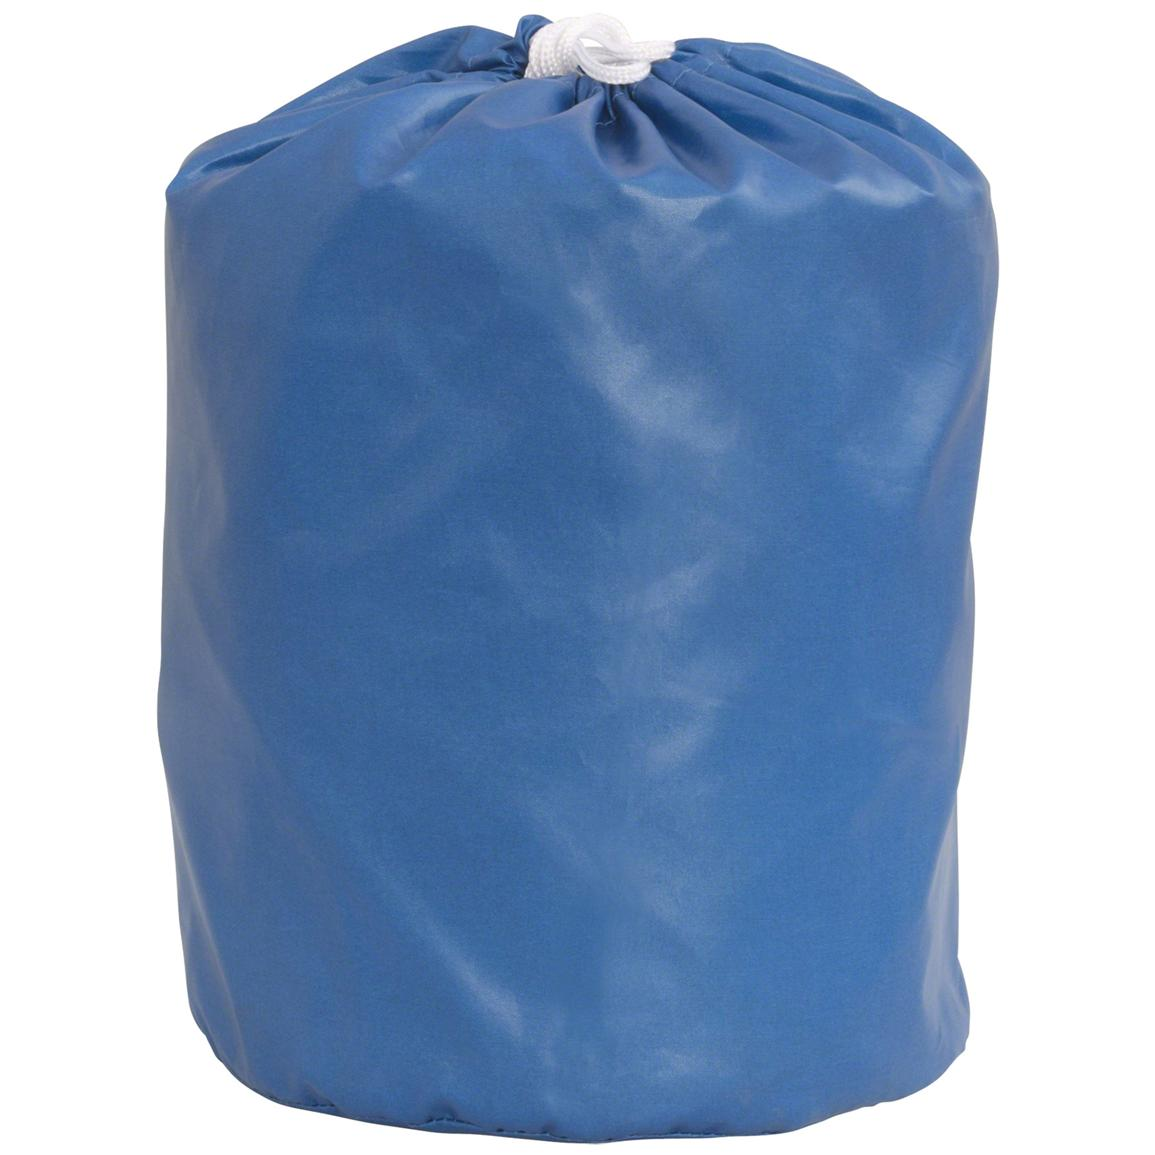 Includes storage bag